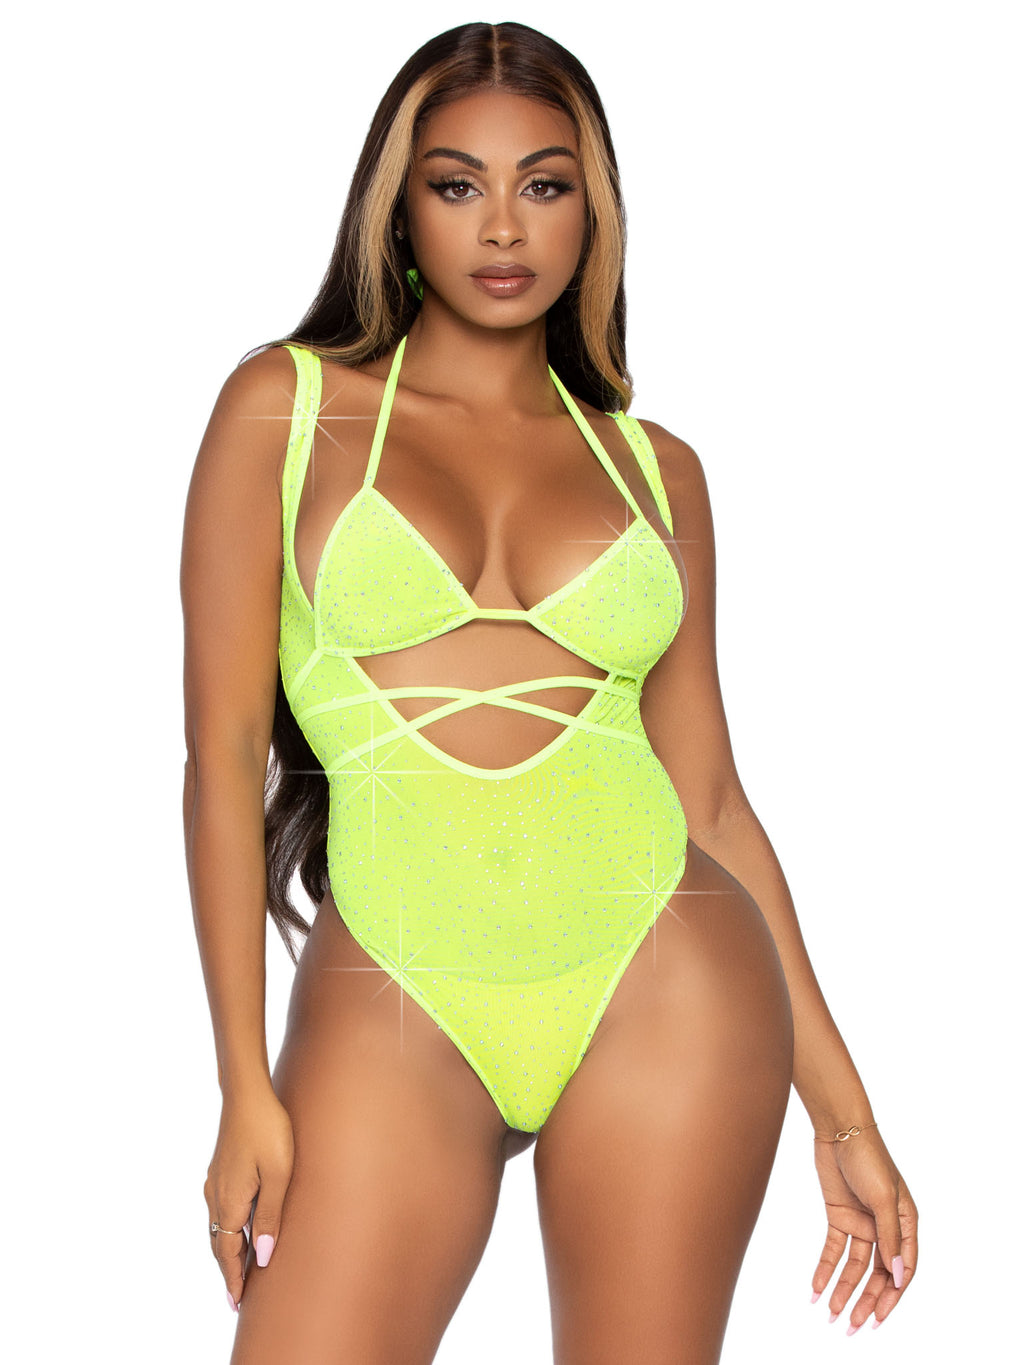 2 Pc. Rhinestone Wrap Around Bikini Top and Suspender Body Suit - One Size - Neon Yellow - Leg Avenue -  Los Angeles Lingerie